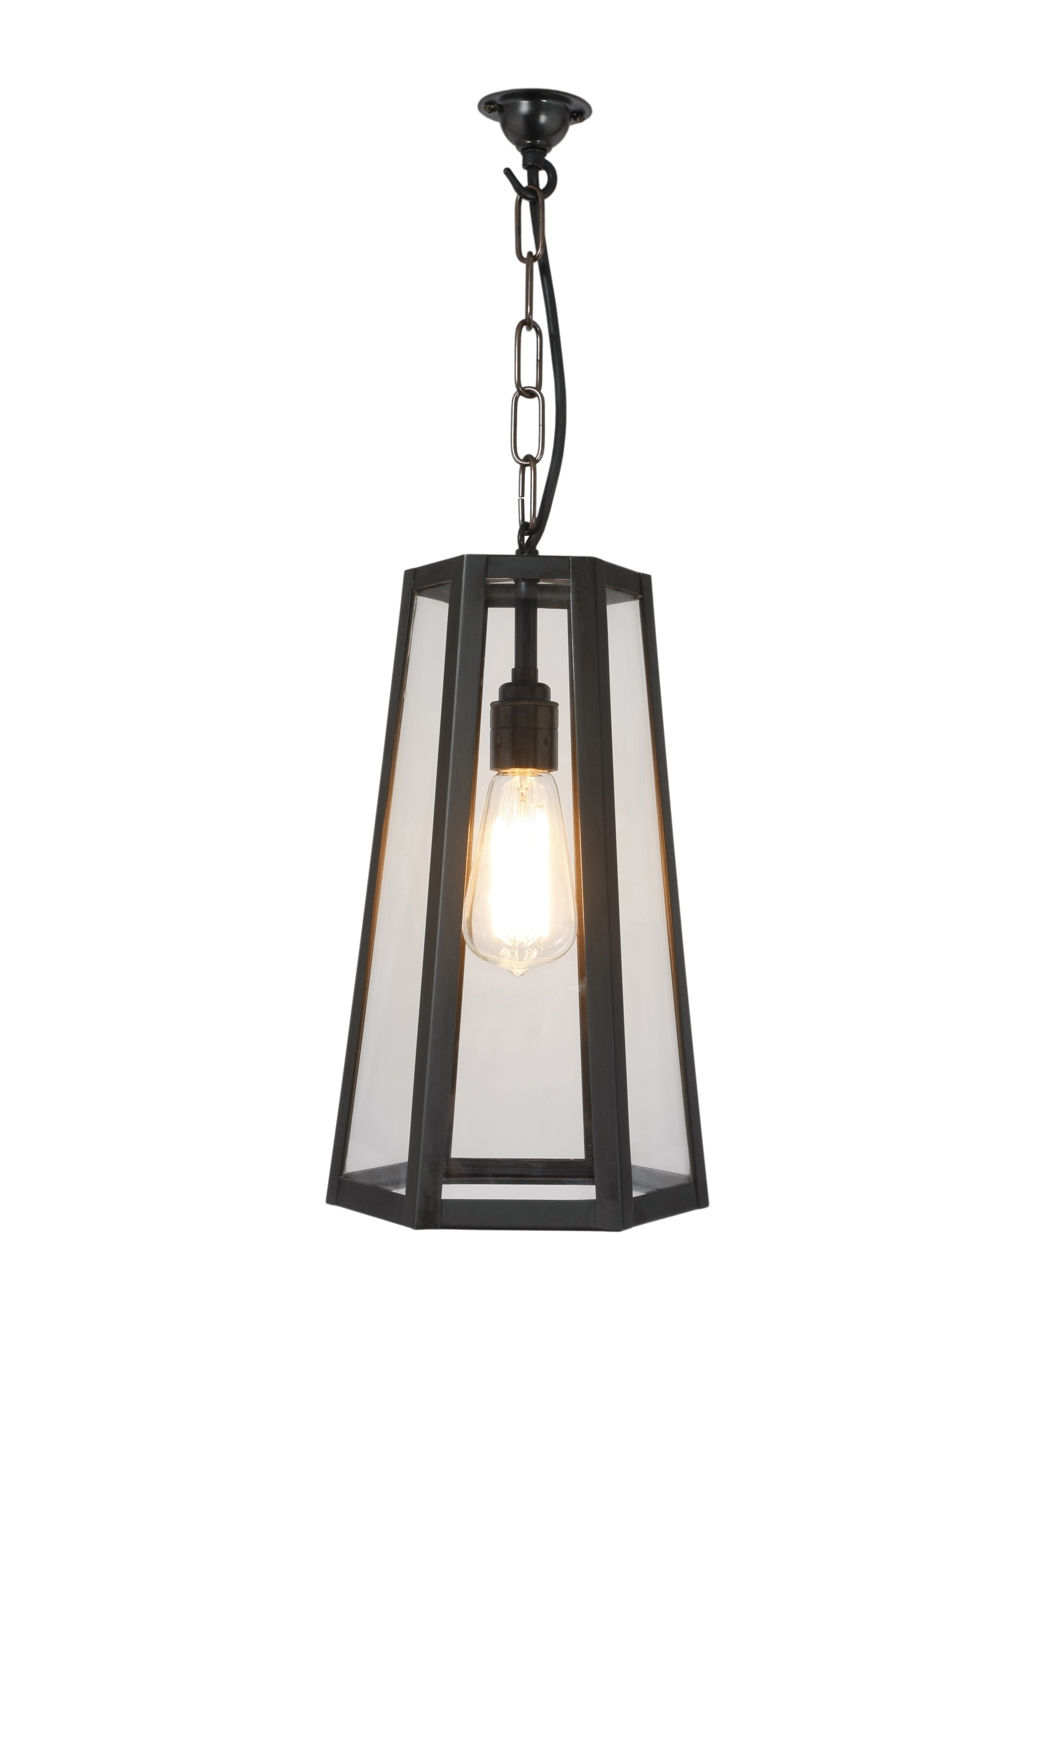 Luminaire - Suspensions - Suspension Hex / H 35 cm - Métal & verre - Original BTC - Noir & transparent - Laiton vielli, Verre